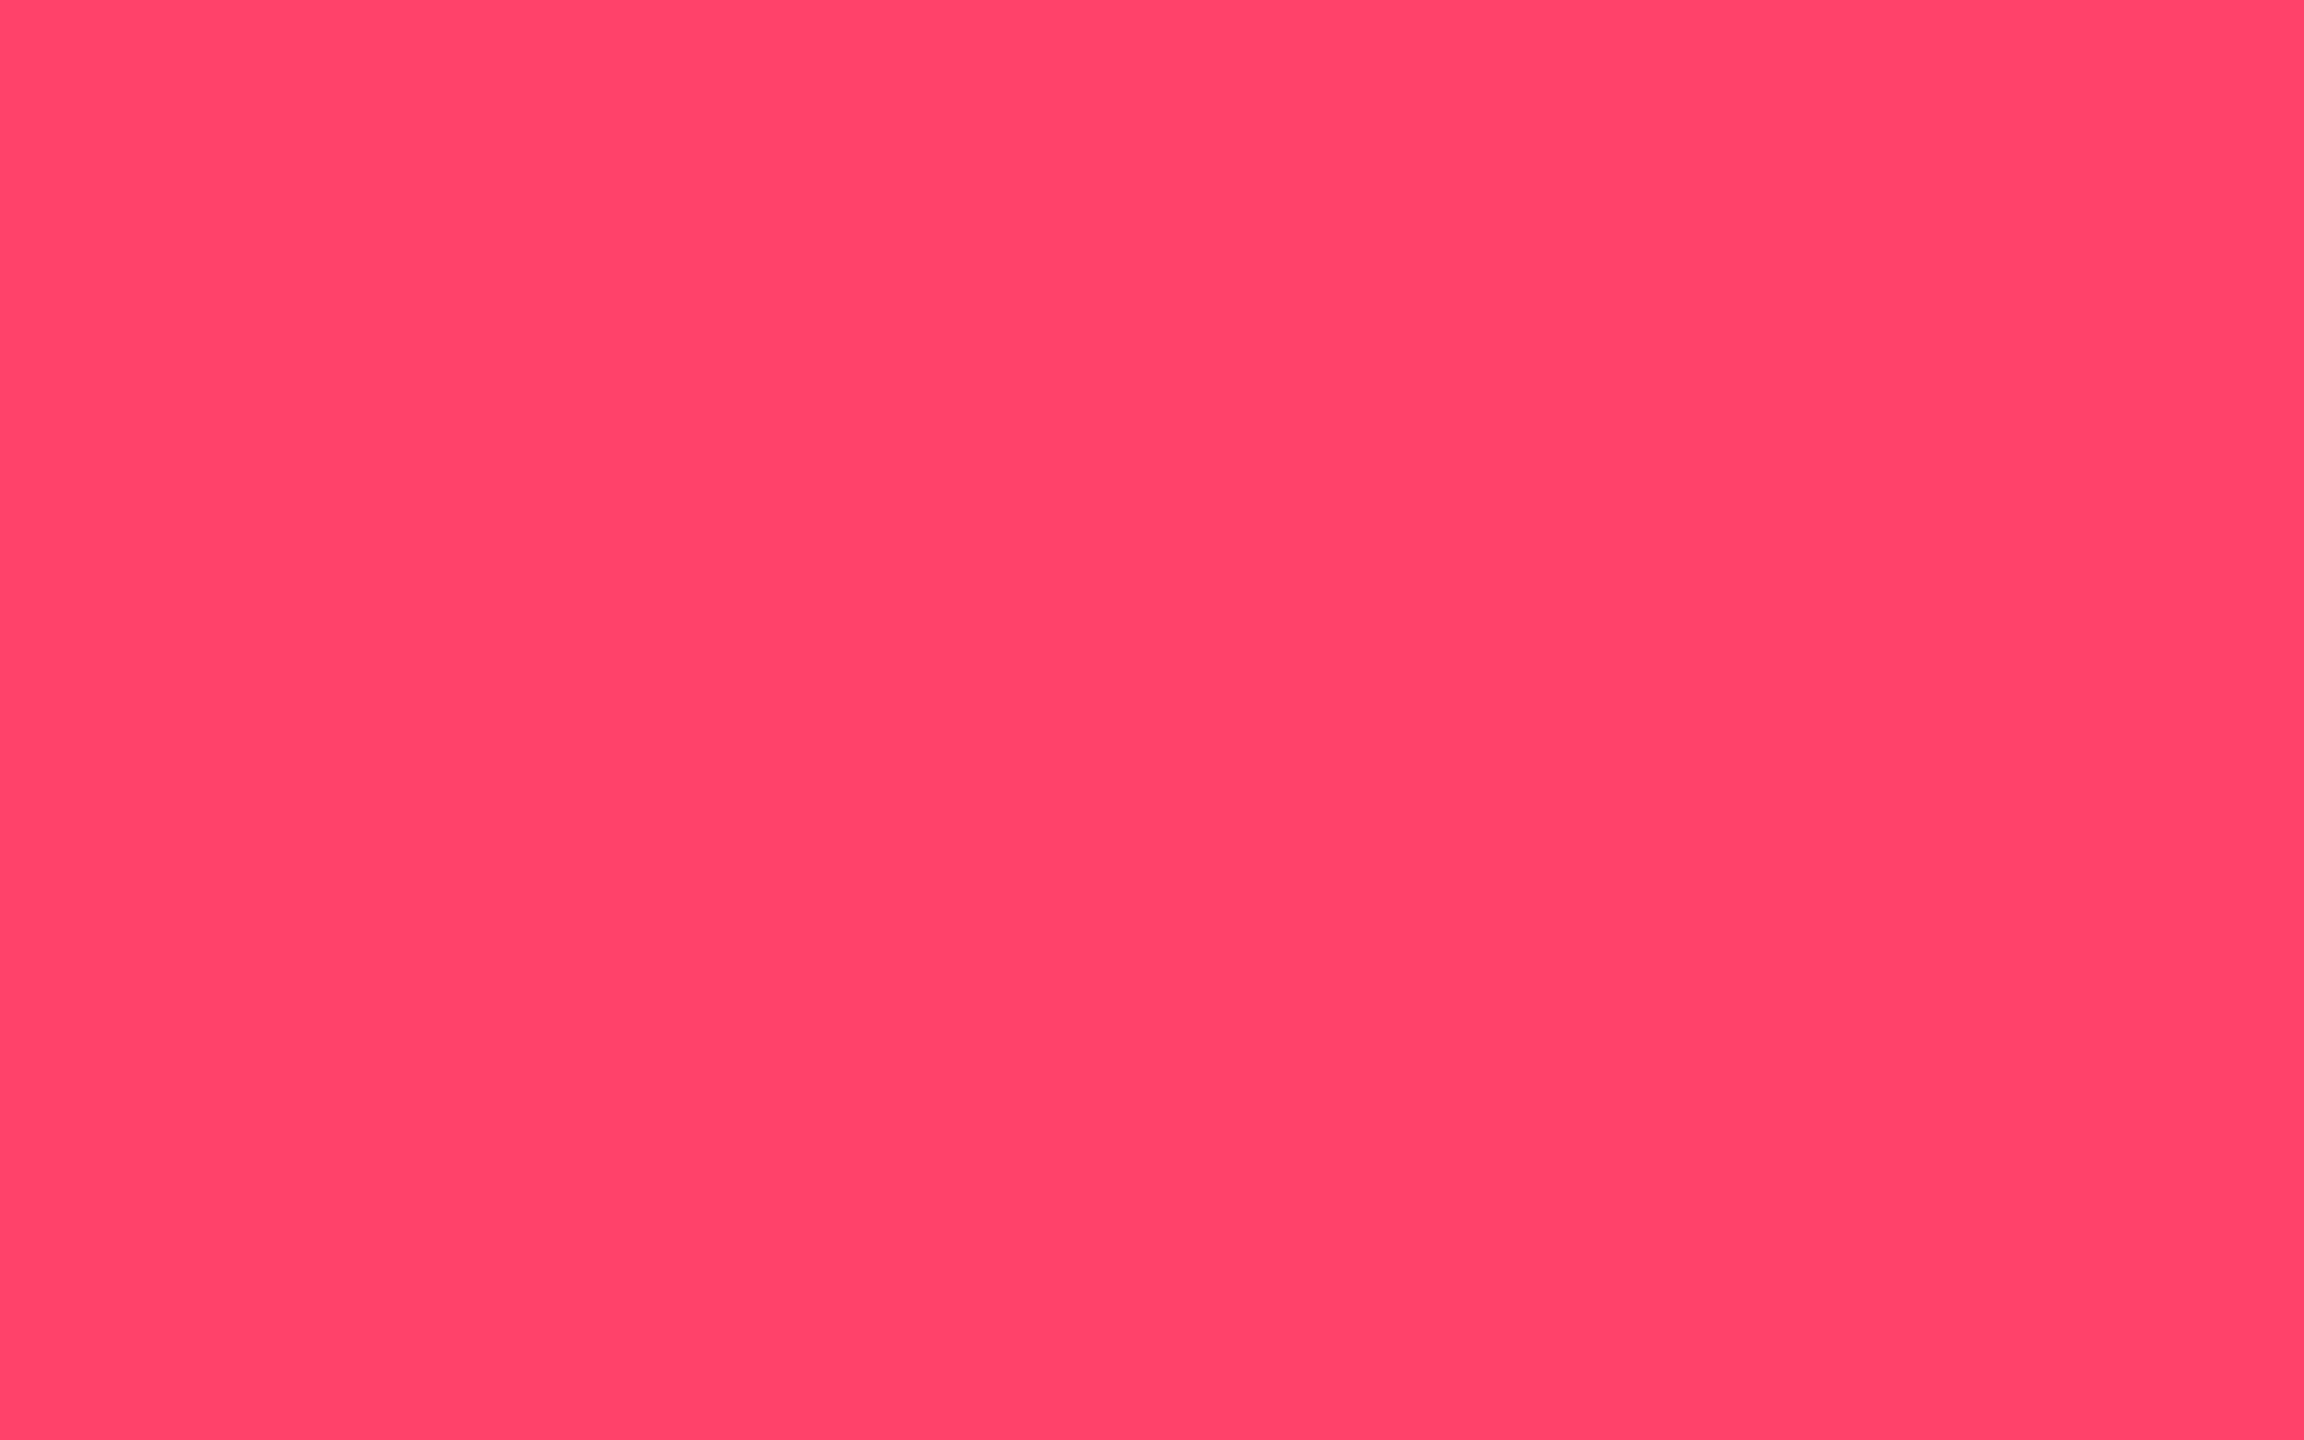 2304x1440 Neon Fuchsia Solid Color Background